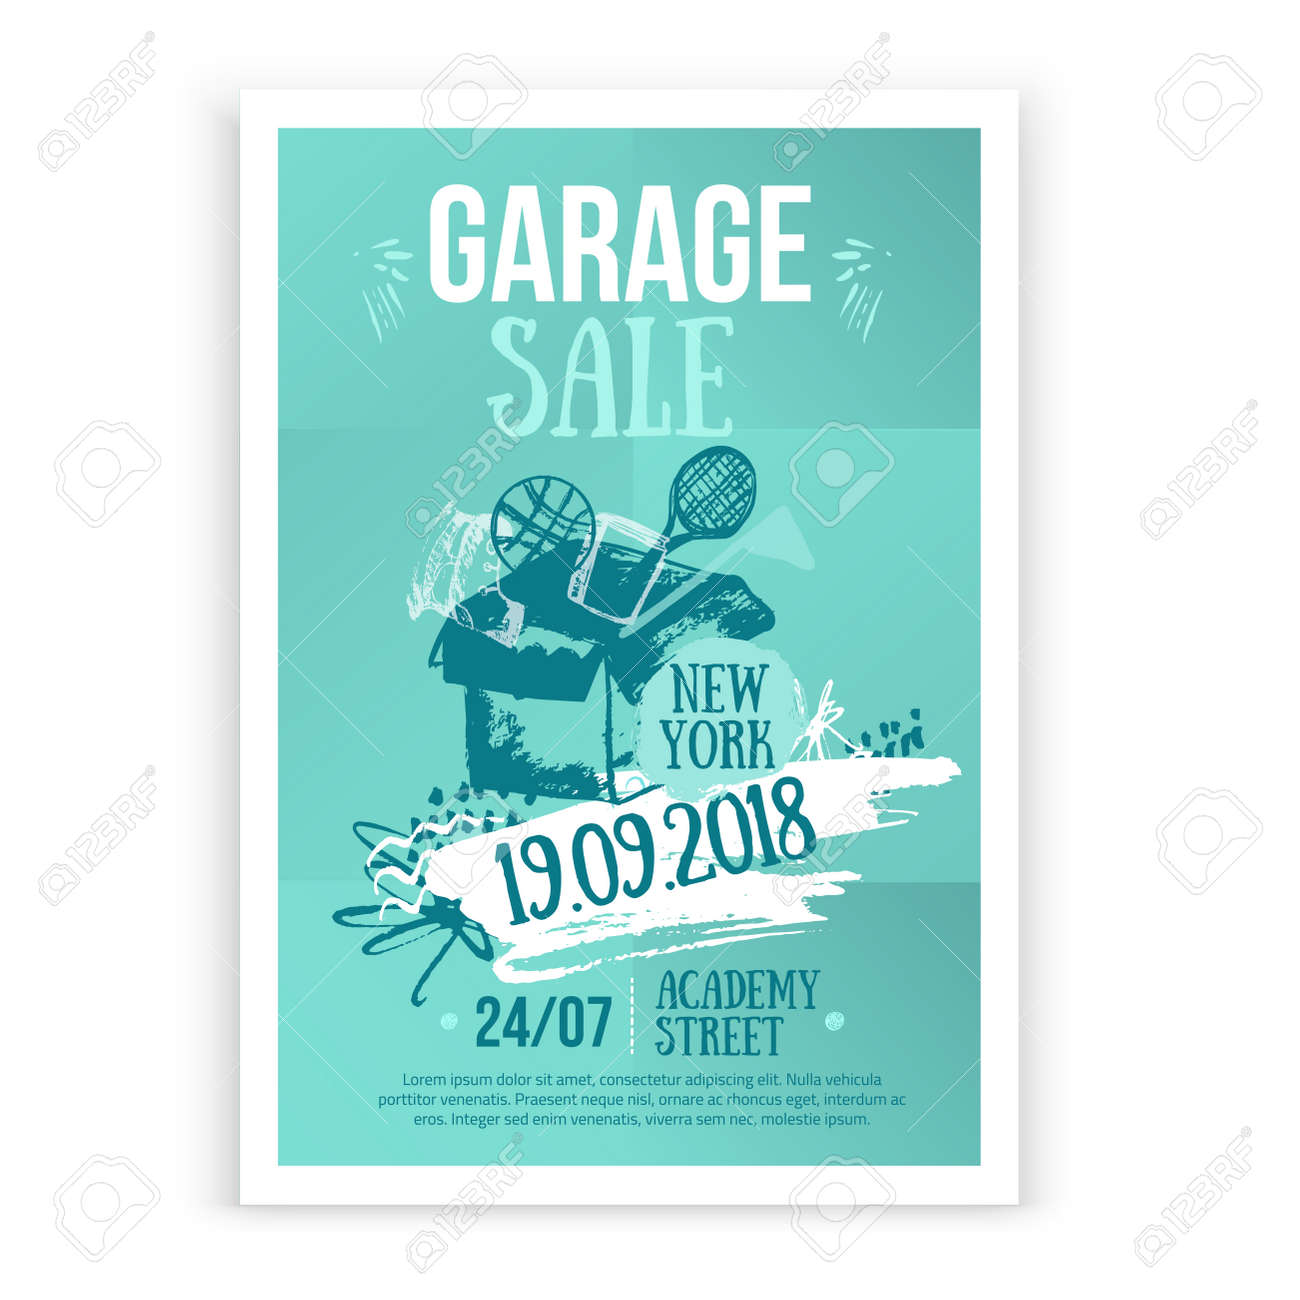 Print Garage Sale Poster Design With Hand Drawn Elements In Trendy